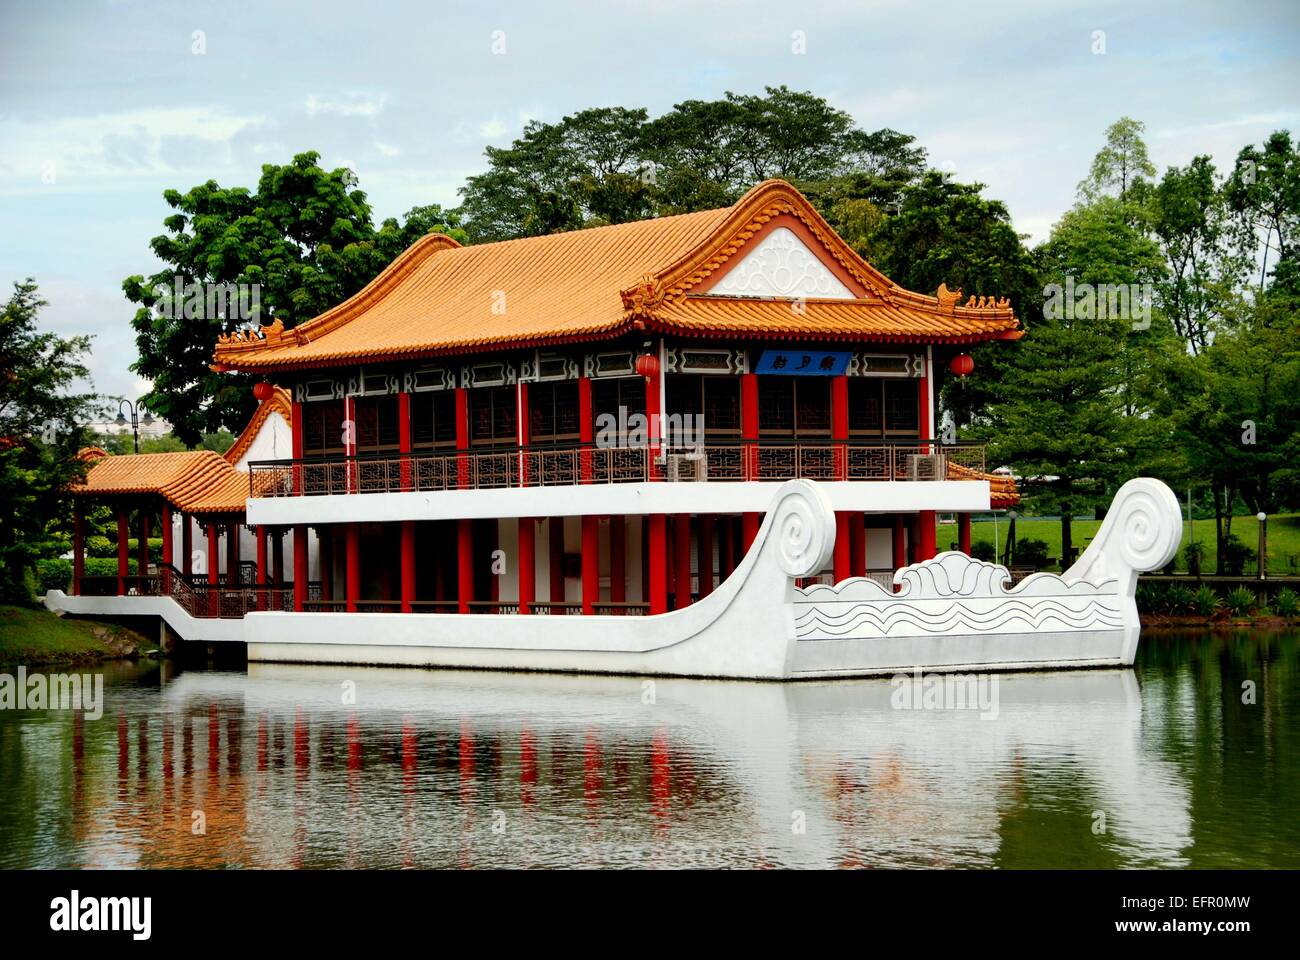 singapore a white marble boat with two story pavilion buit atop